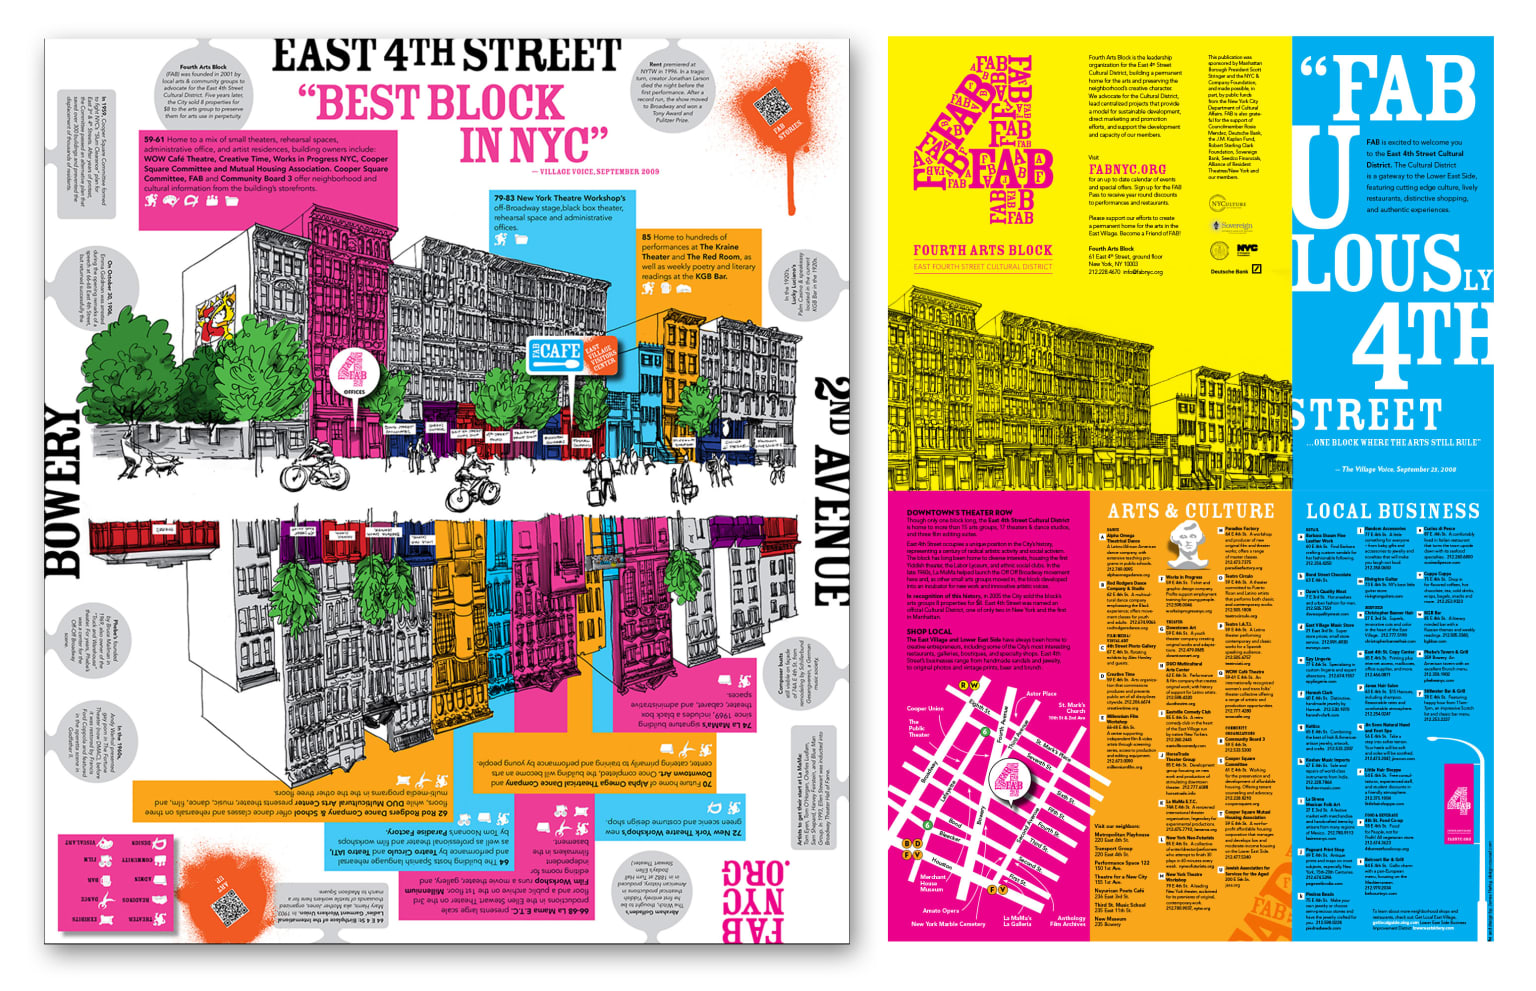 East Fourth Street Cultural District branding and collateral